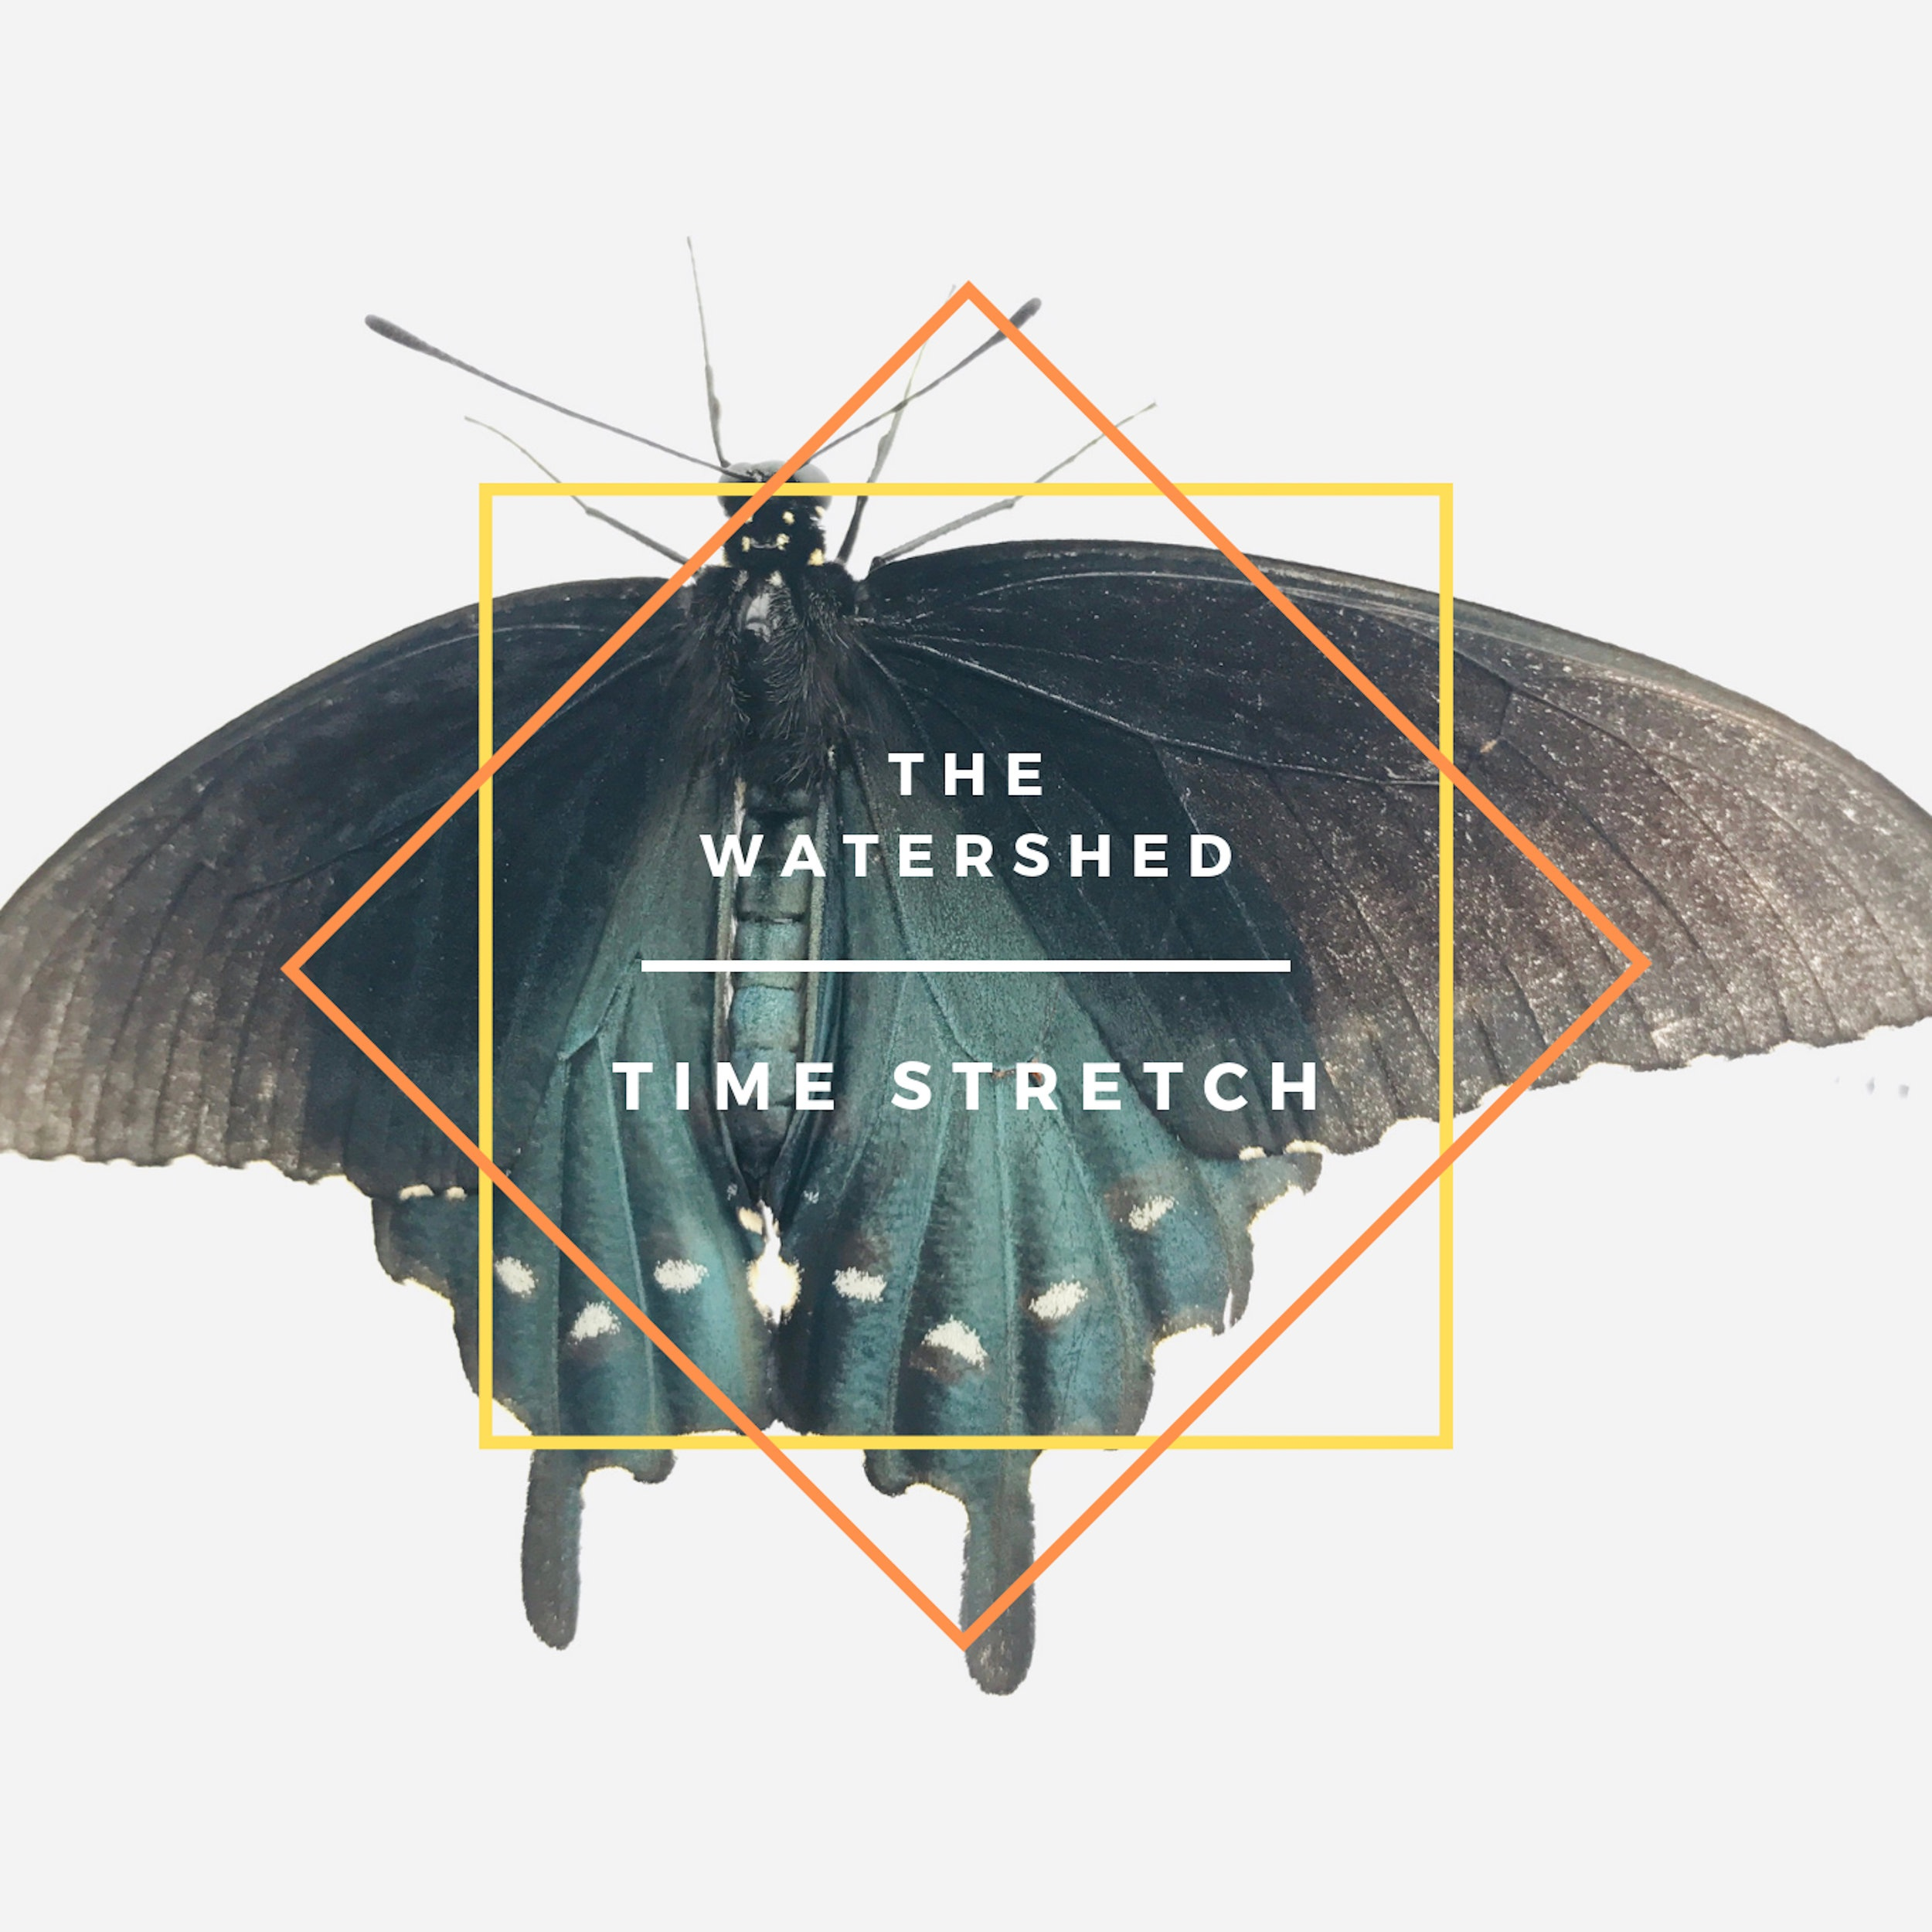 "SHED 011 : THE WATERSHED ""TIME STRETCH"" SORTIE LE 8 MAI, 2019"